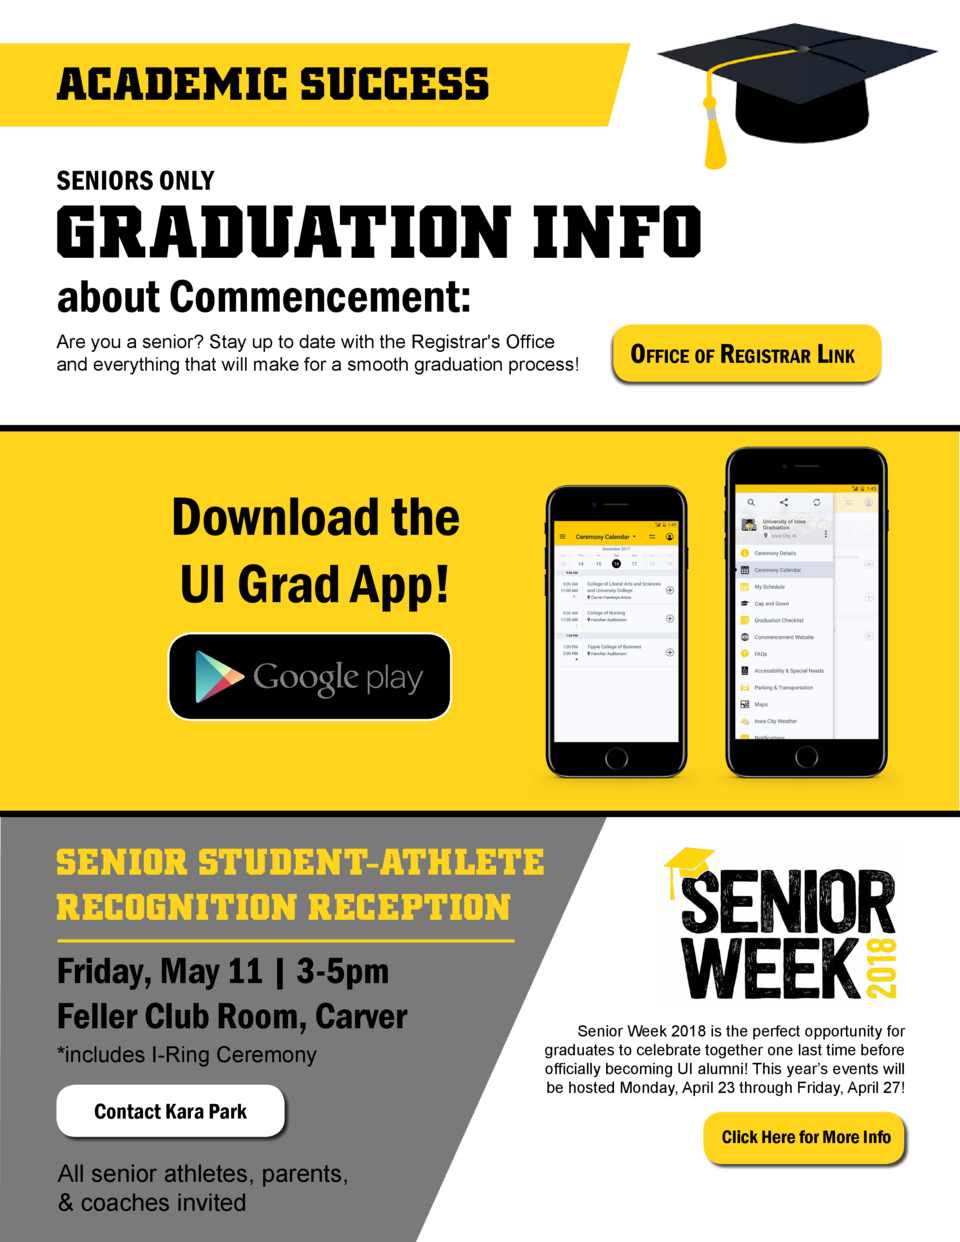 ACADEMIC SUCCESS SENIORS ONLY  GRADUATION INFO about Commencement   Are you a senior  Stay up to date with the Registrar s...